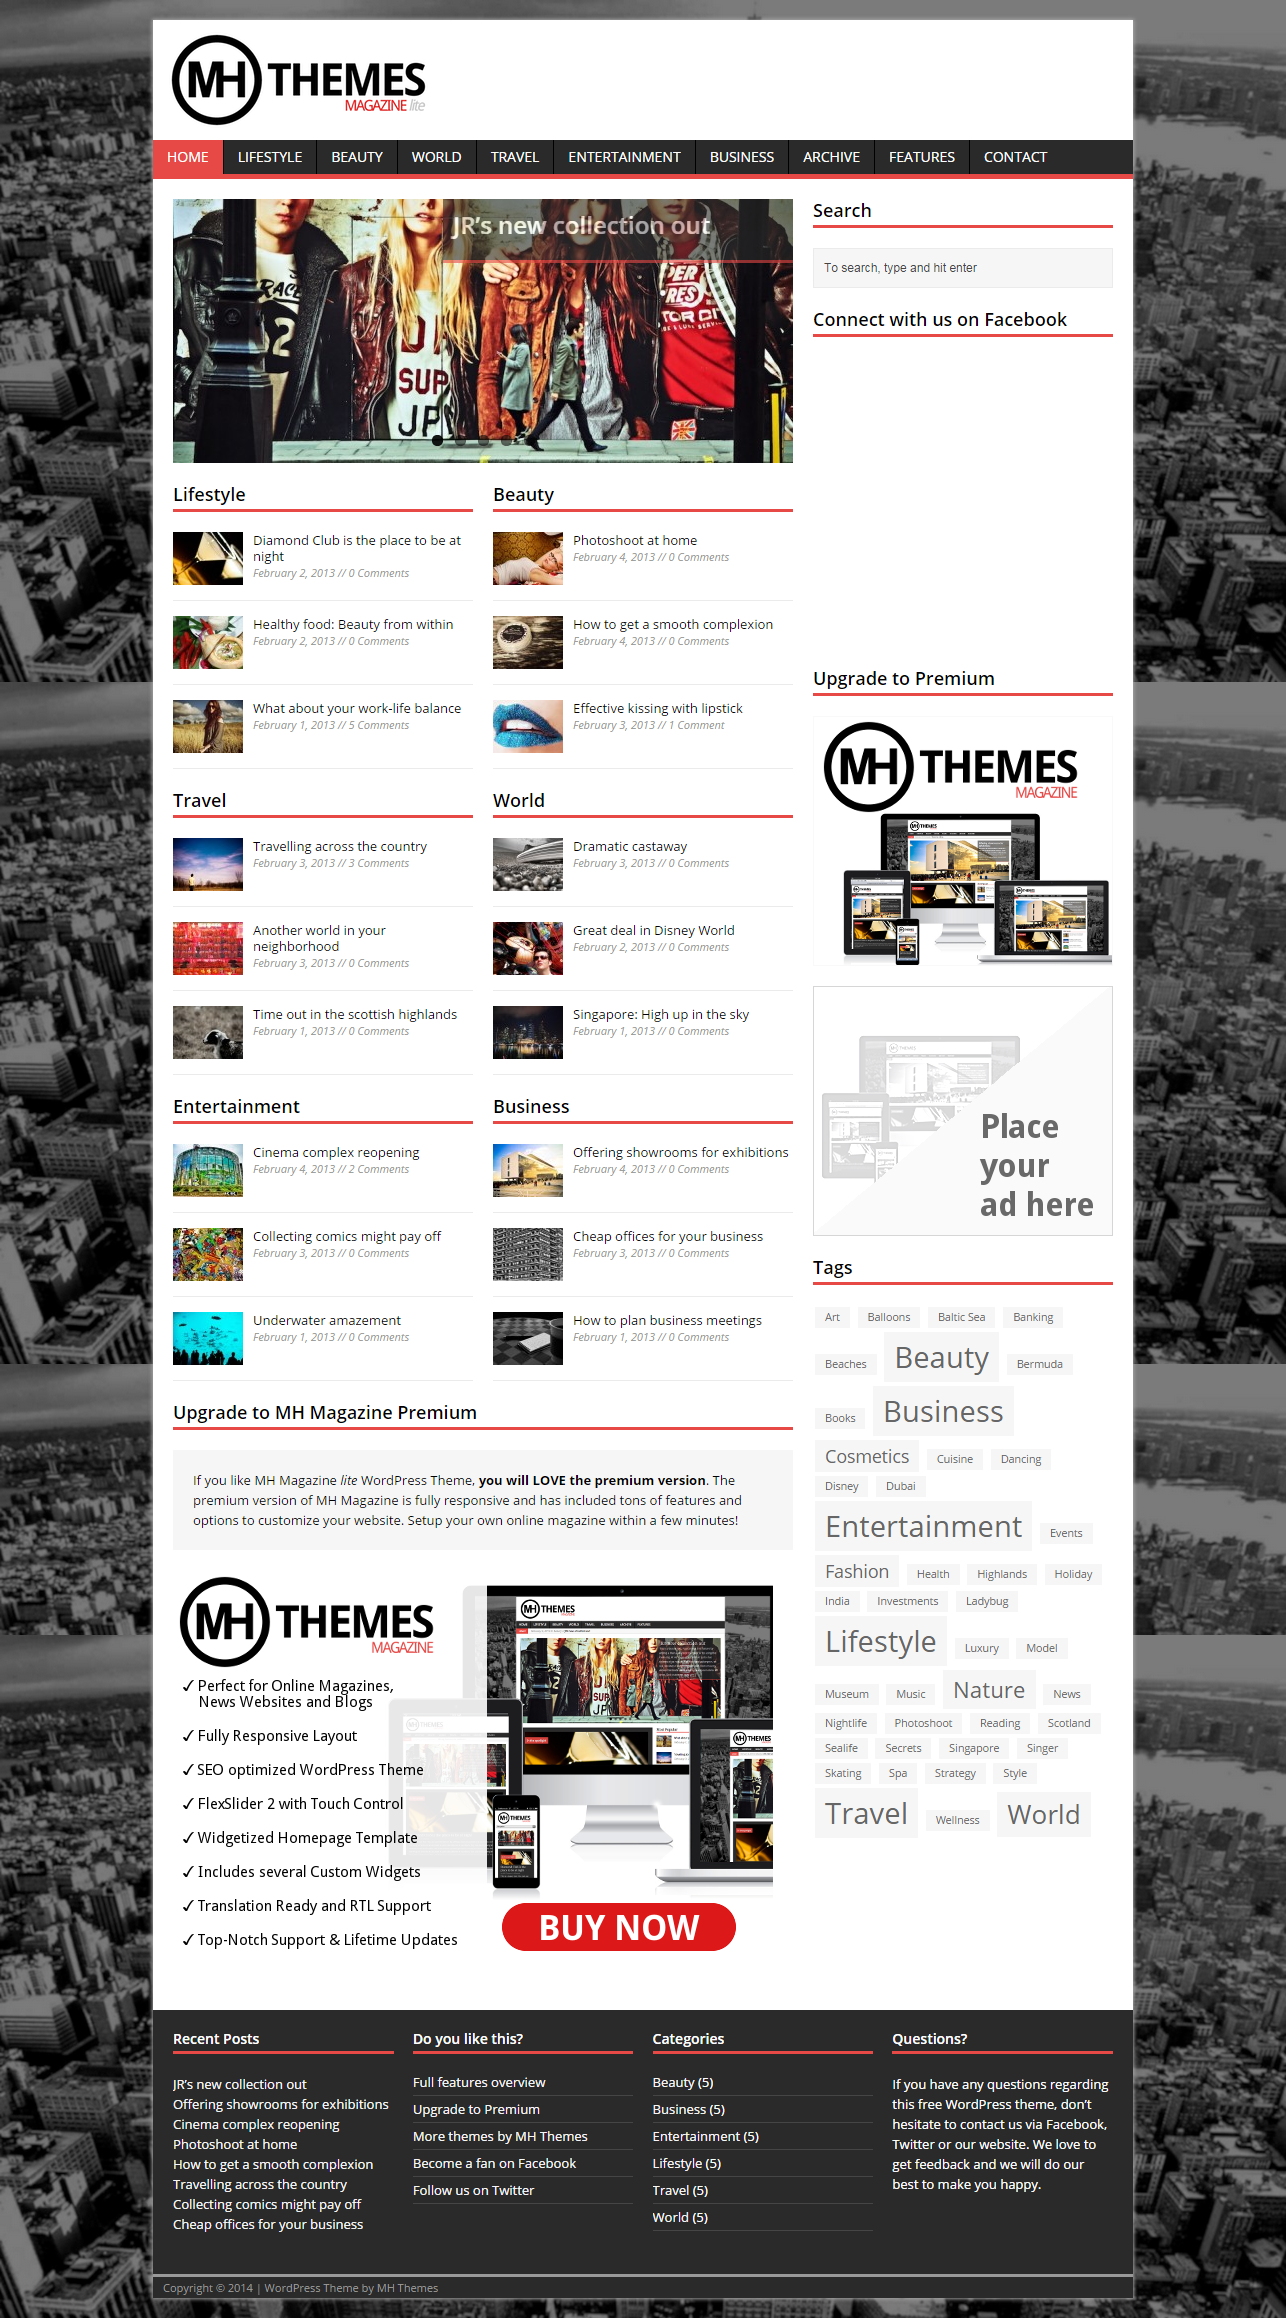 Top 10 Free WordPress Themes September, 2014